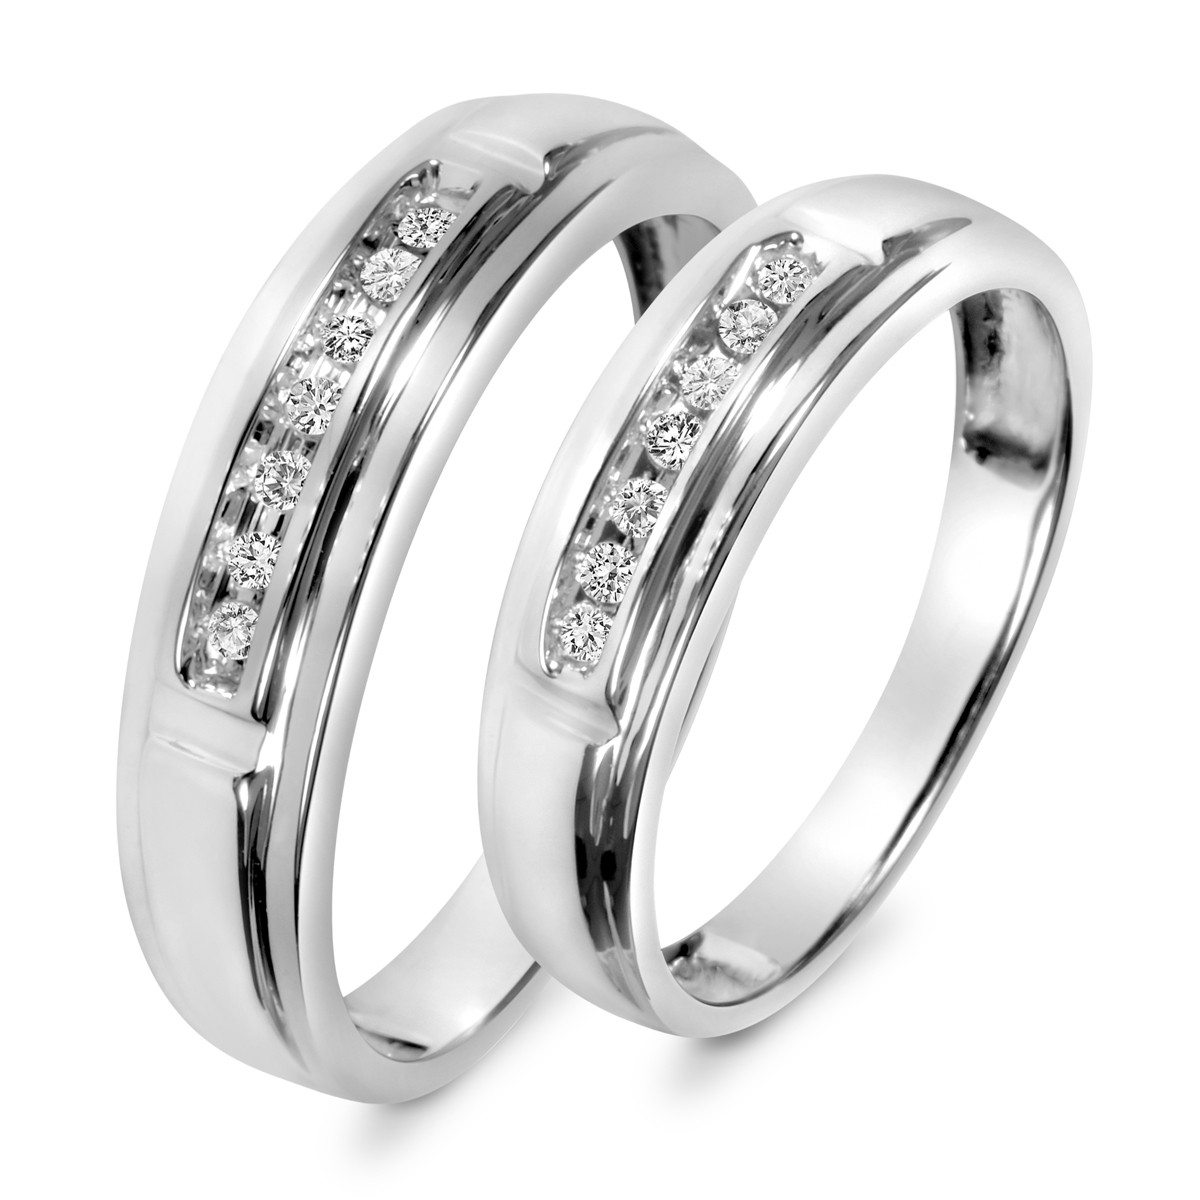 Platinum his and hers wedding rings wedding bands his - Platinum His And Hers Wedding Rings Wedding Bands His 42